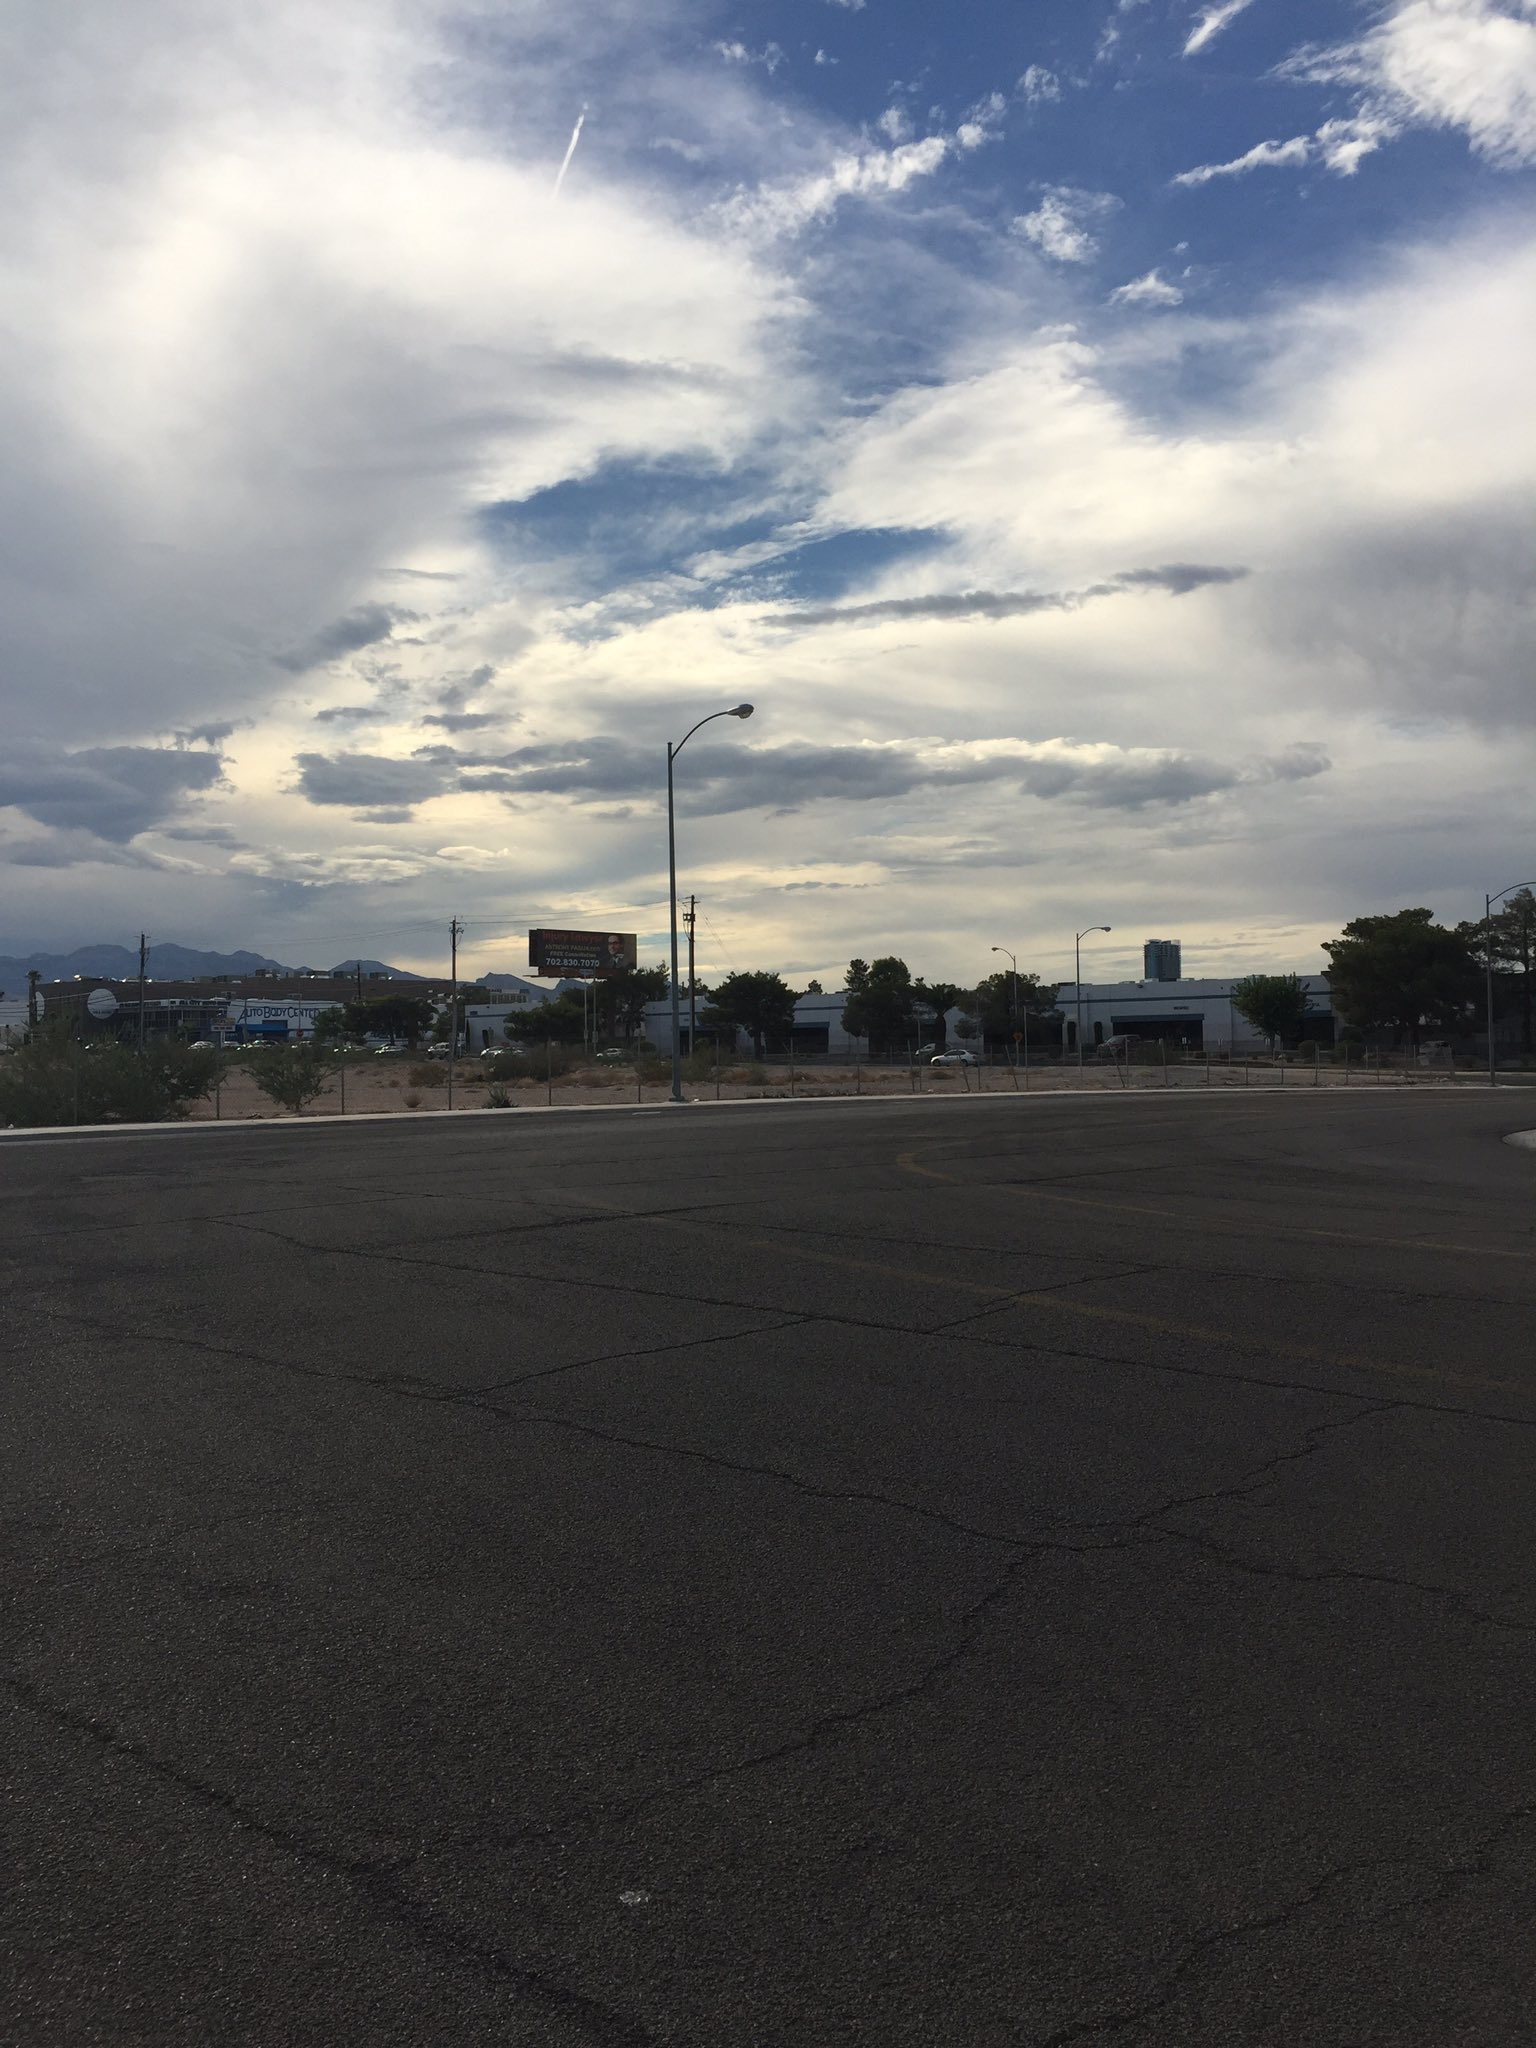 A neighborhood on the verge of change: the site of the future Raiders stadium and  current debate over parking. (Jeff Gillan | KSNV)